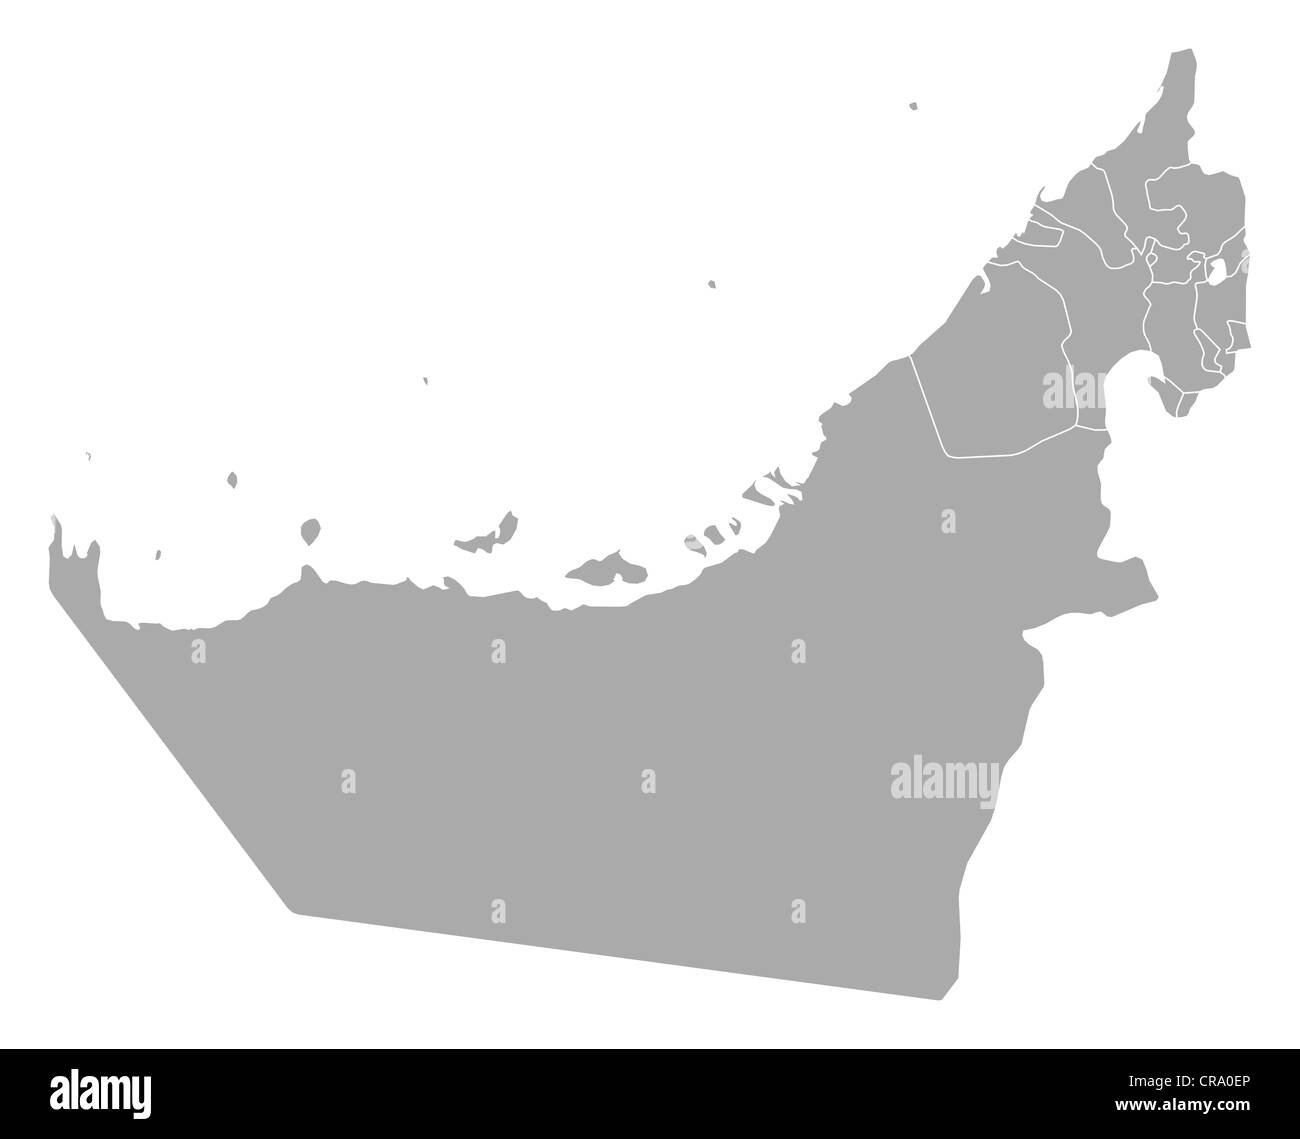 Political map of the United Arab Emirates with the several emerats. - Stock Image